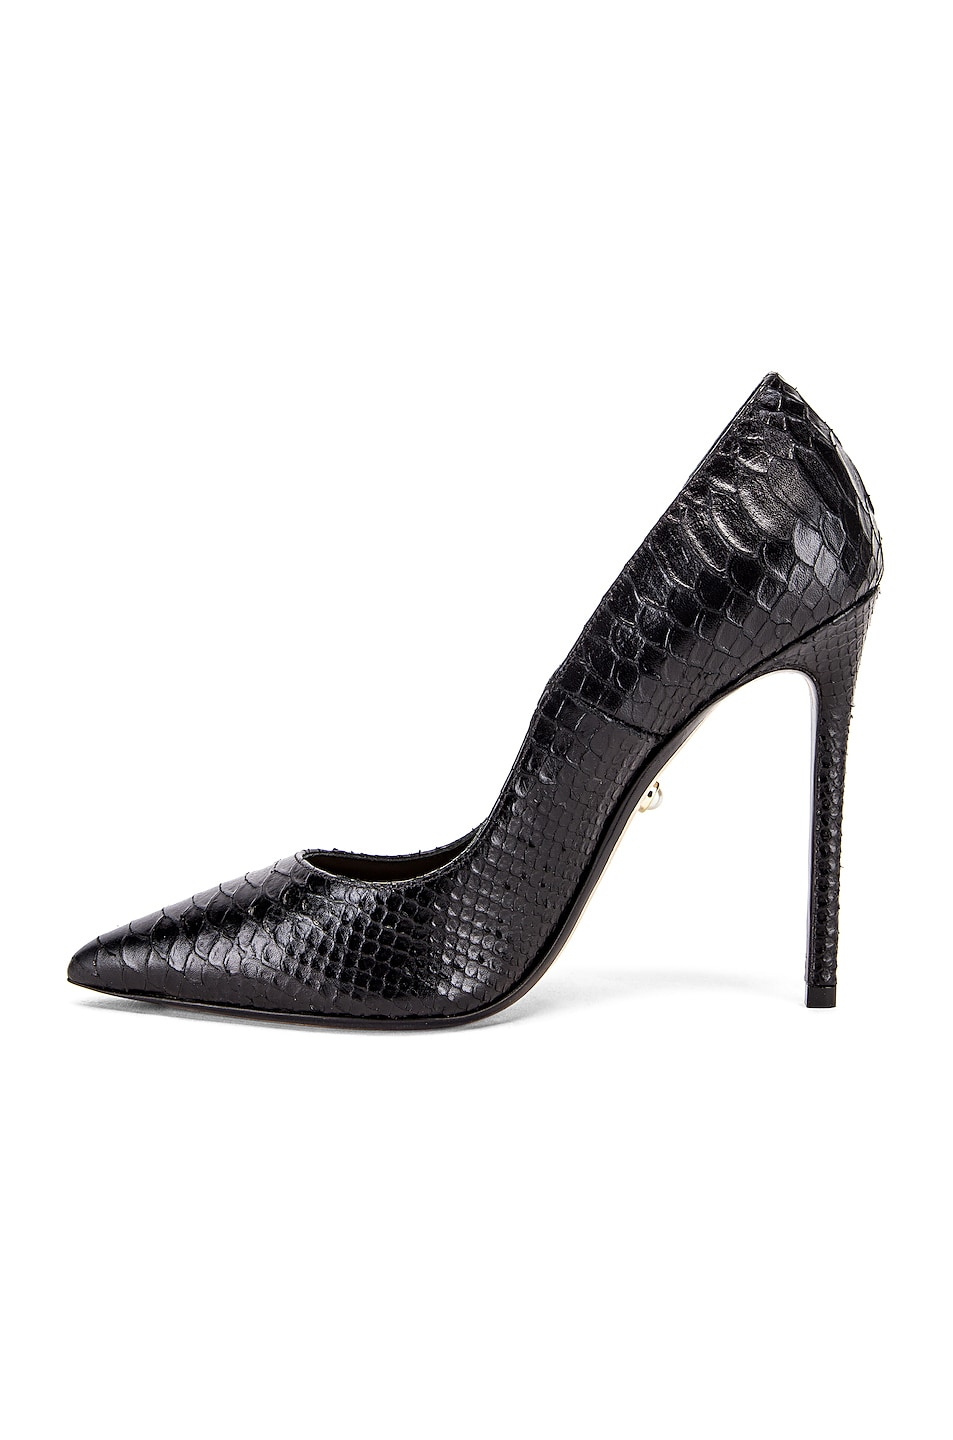 Image 5 of ALEVI Milano Alevi Carrie Pump in Black Snake